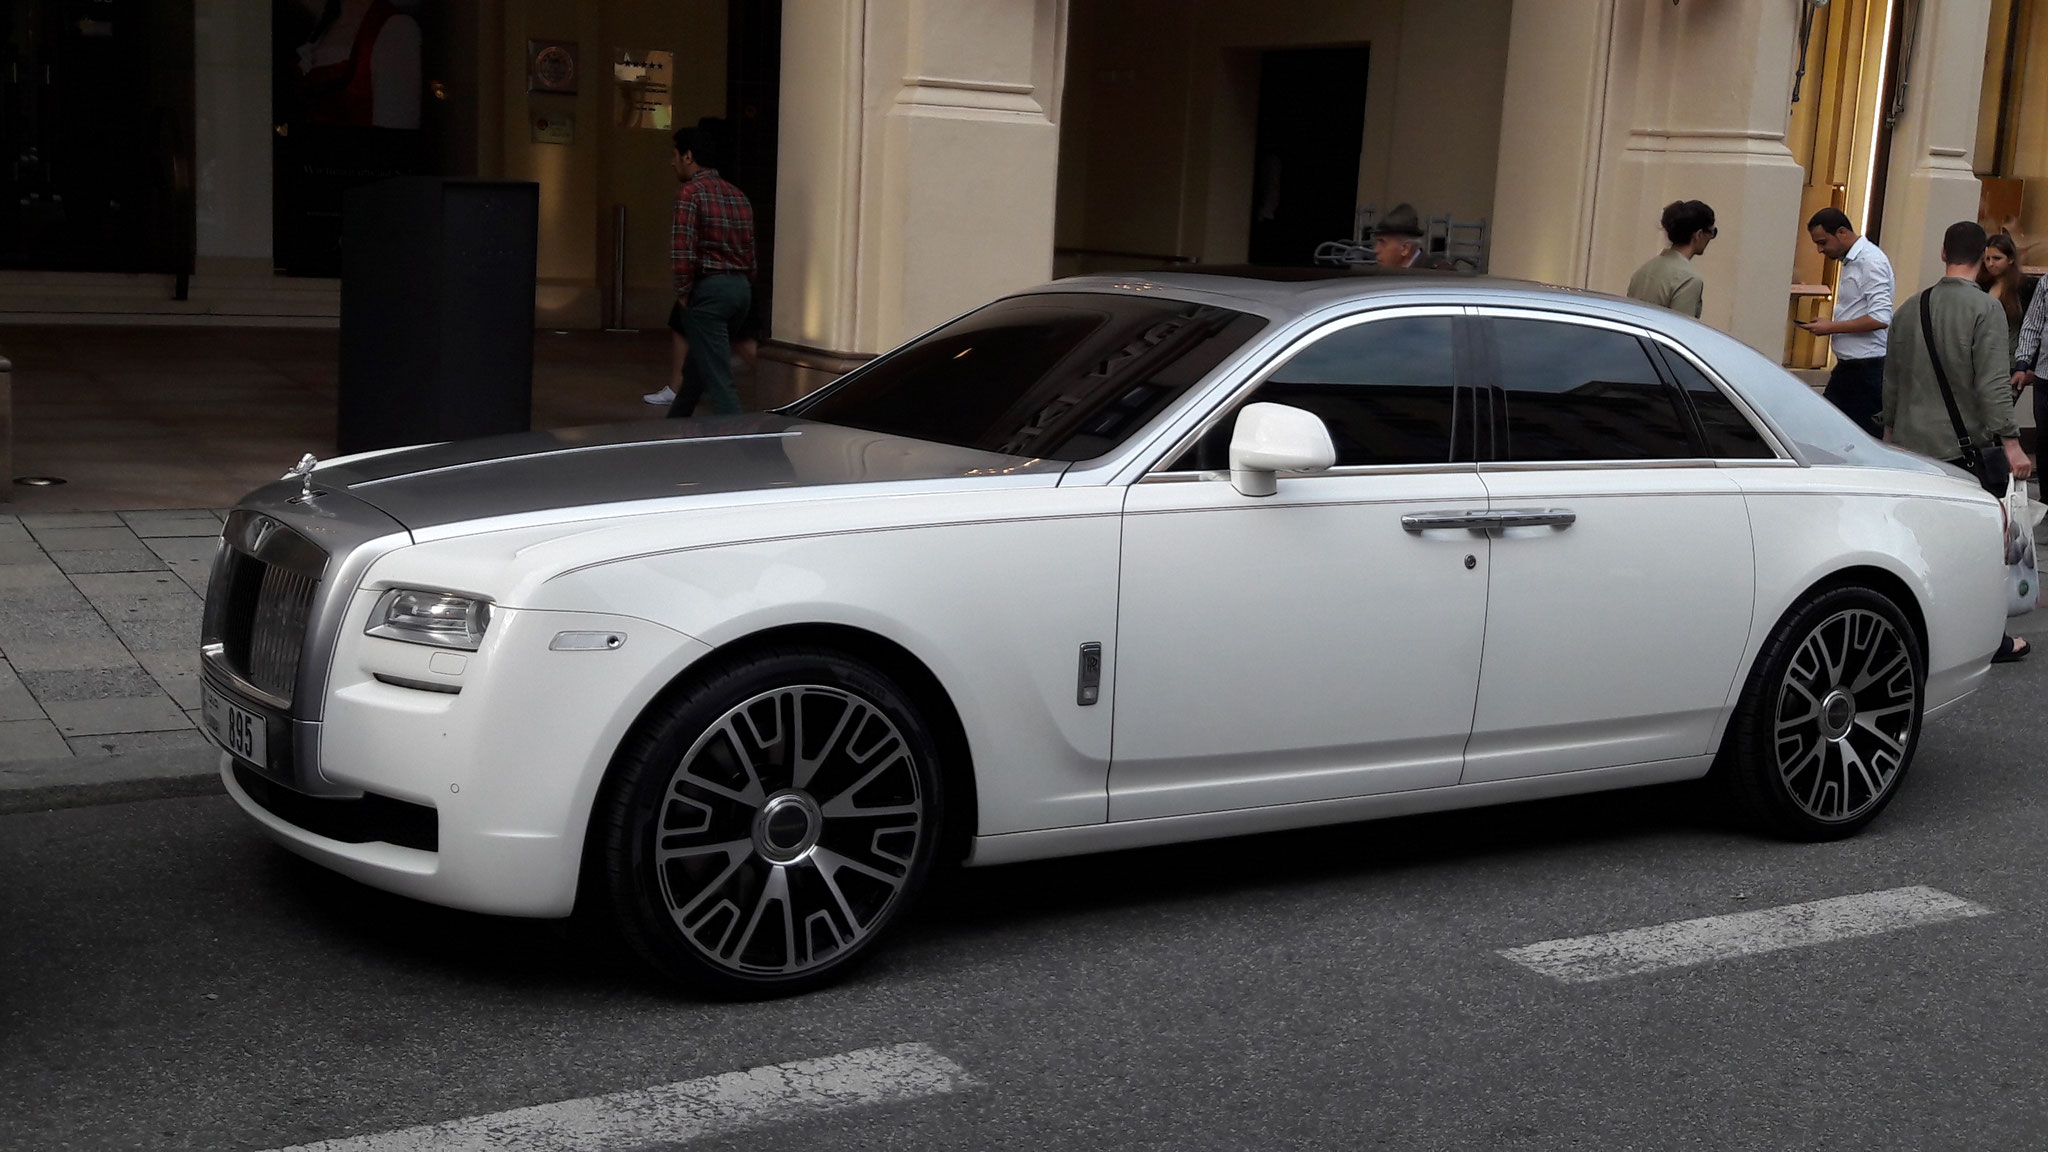 Rolls Royce Ghost - E-895 (UAE)